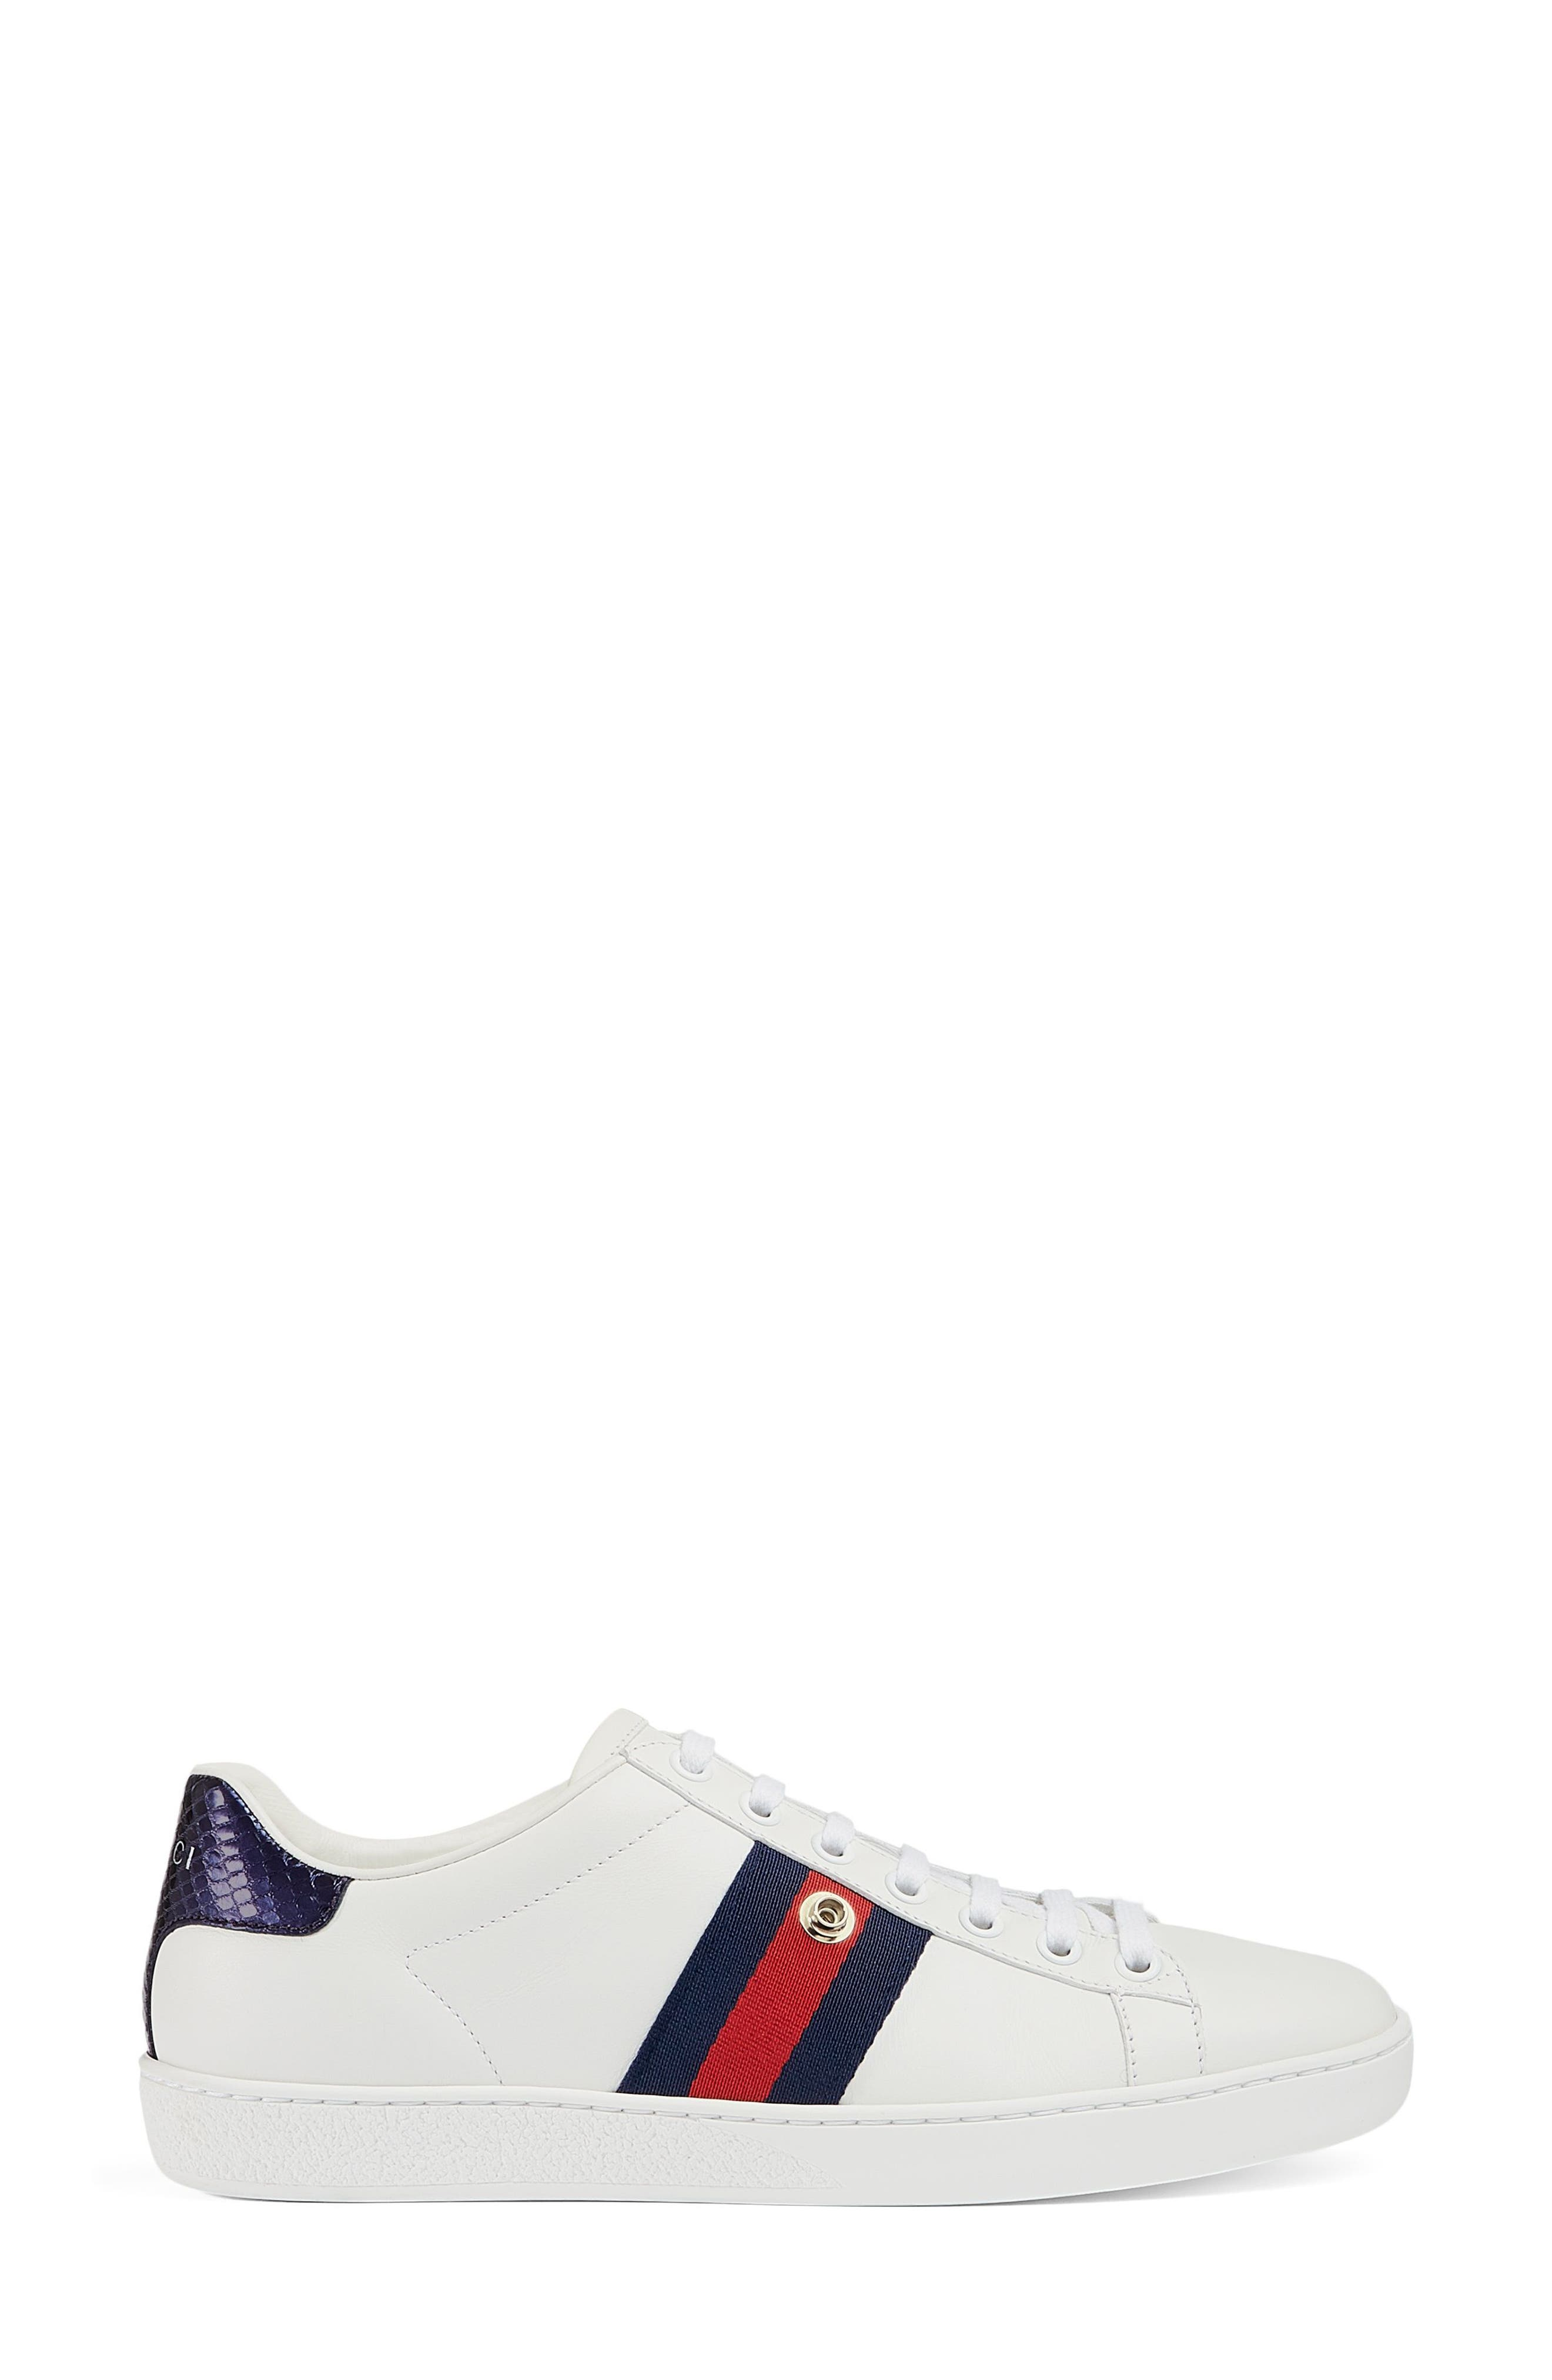 Alternate Image 4  - Gucci New Ace Pineapple Embroidered Patch Low Top Sneaker (Women)